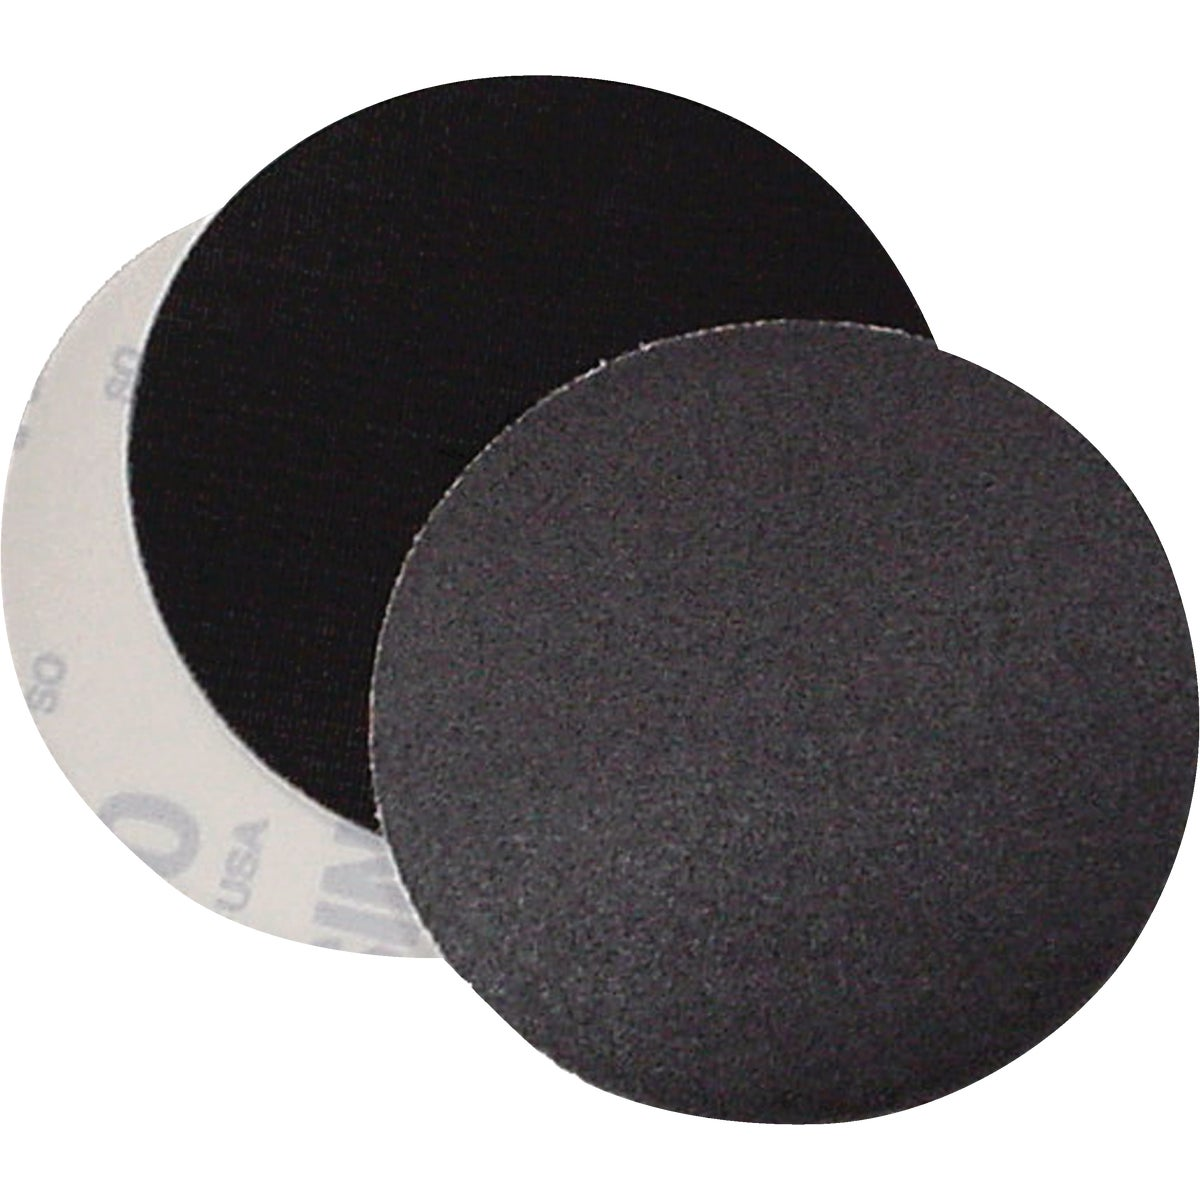 "6-7/8"" 36G SANDING SHEET - 003-867836 by Virginia Abrasives"